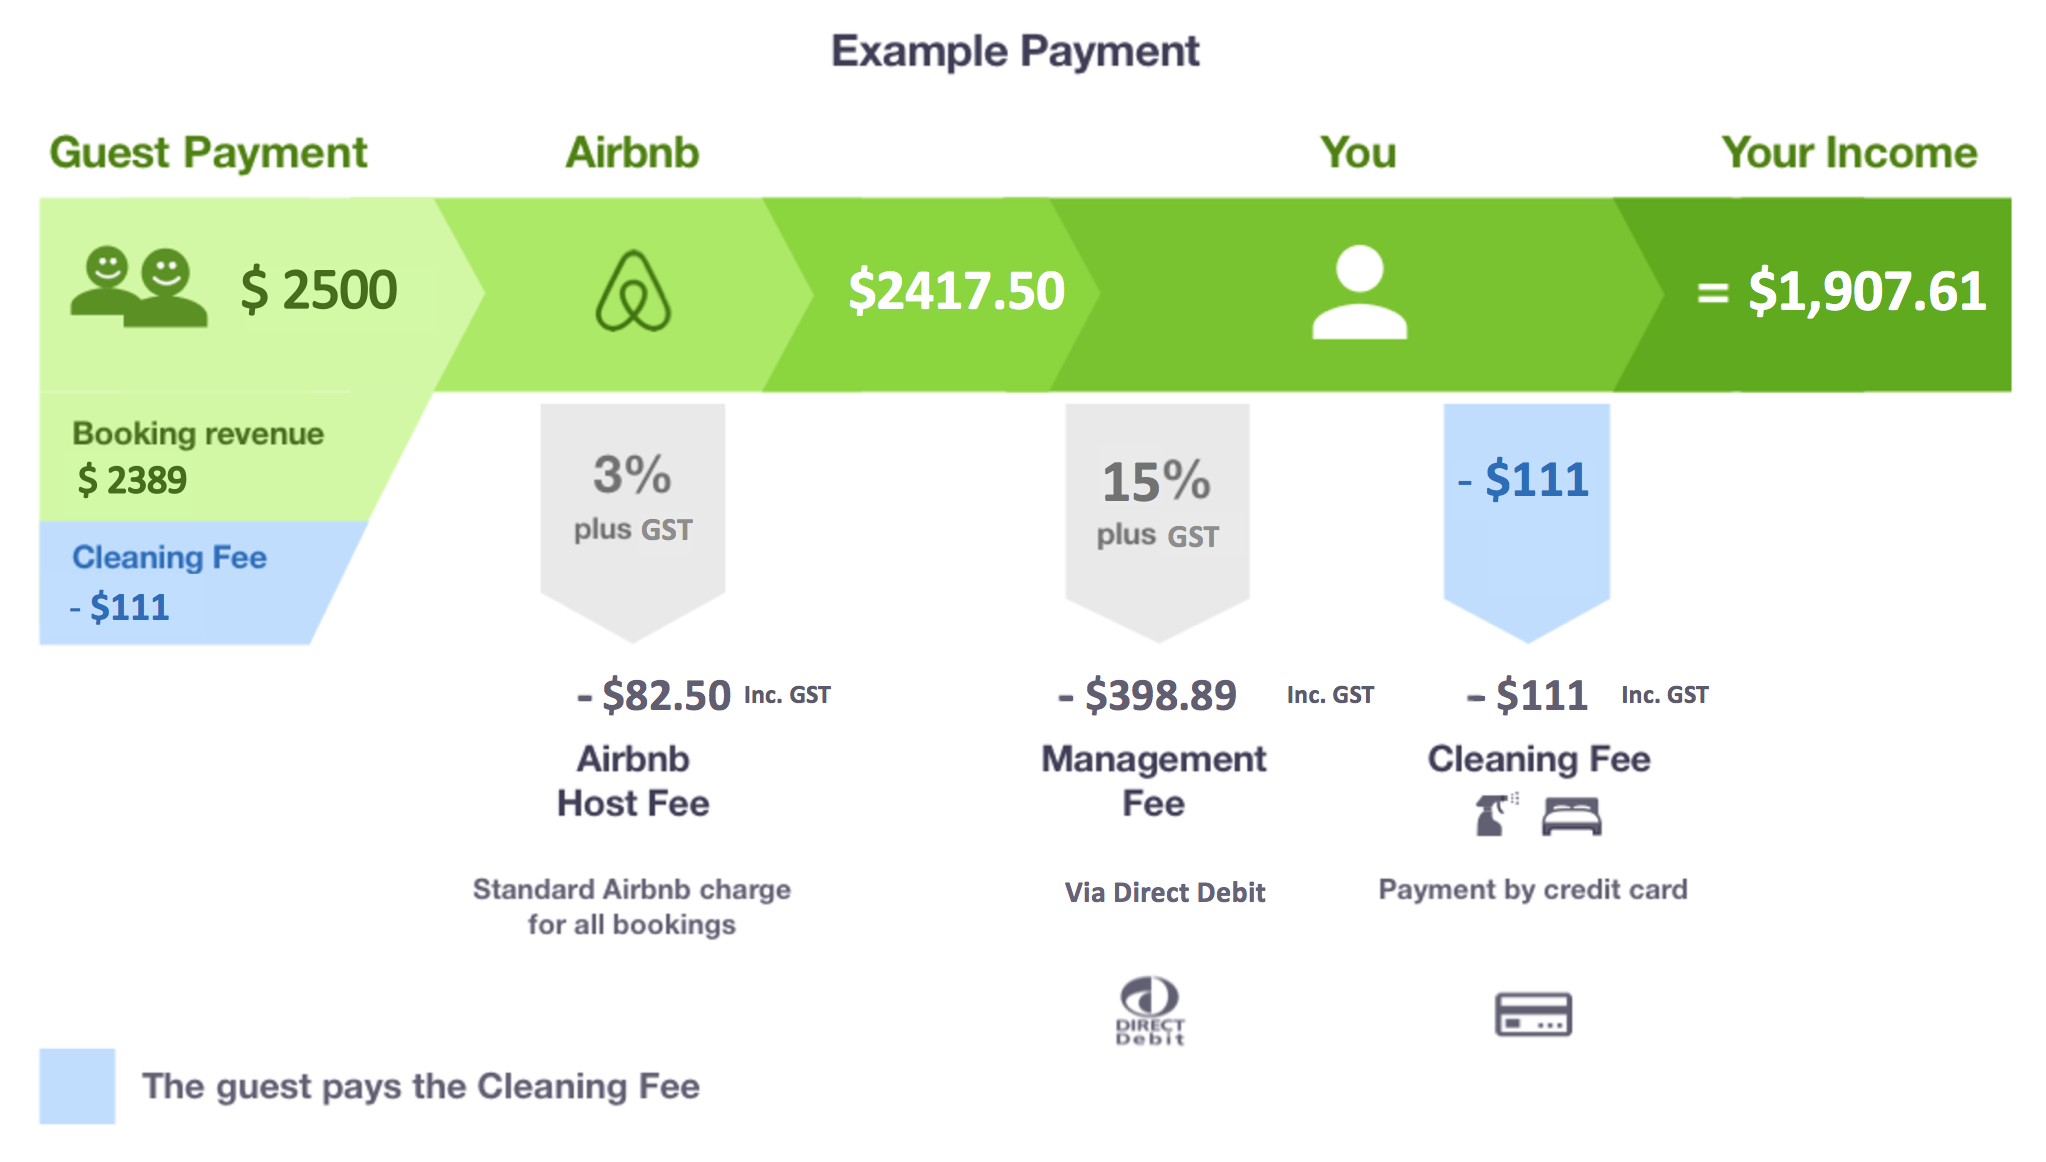 Payment example